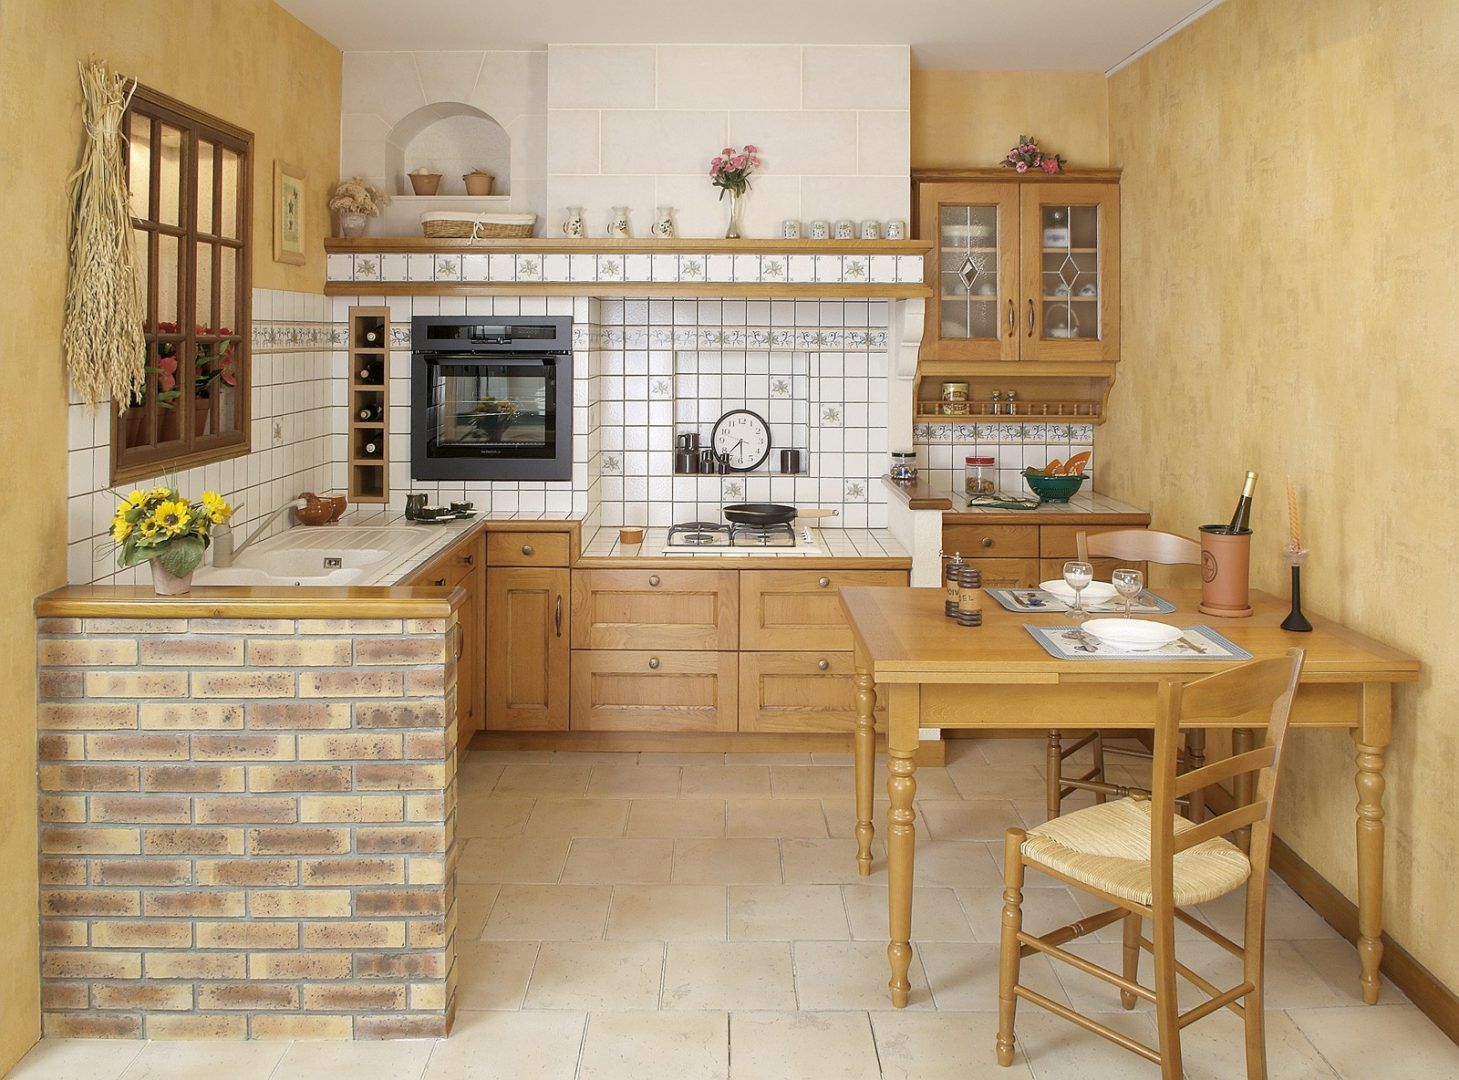 Ideas Para Decorar Cocinas Rusticas There No Place Like Home - Decorar-una-cocina-rustica